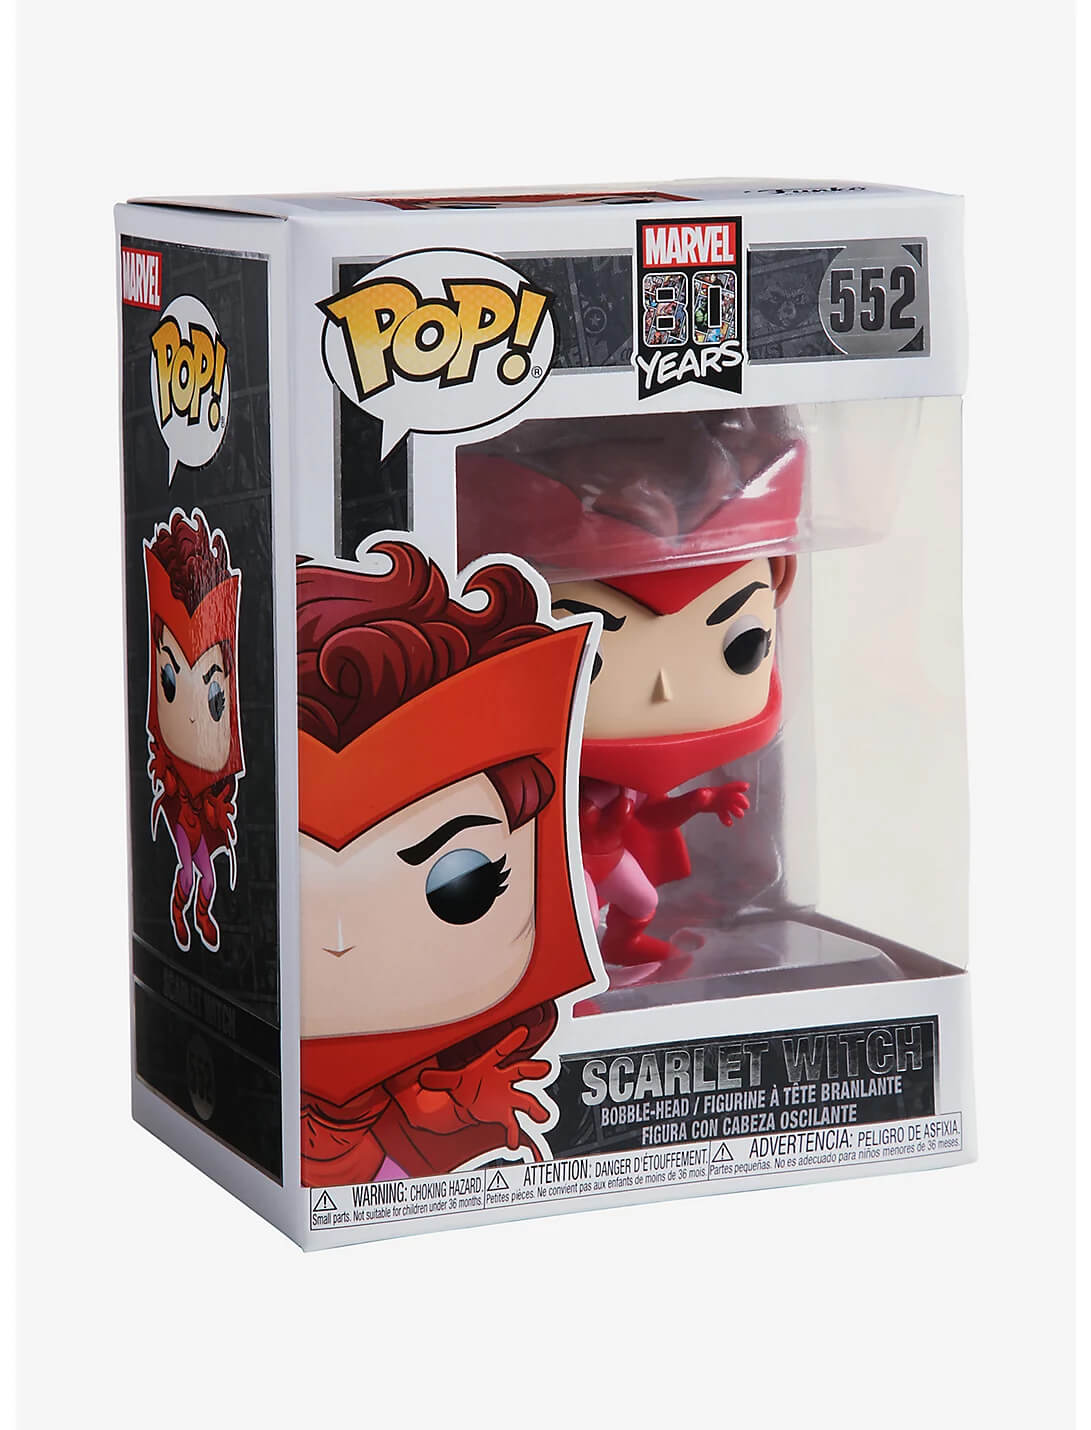 Scarlet Witch #552 (Feiticeira Escarlate) - 80 Years - Funko Pop! Marvel